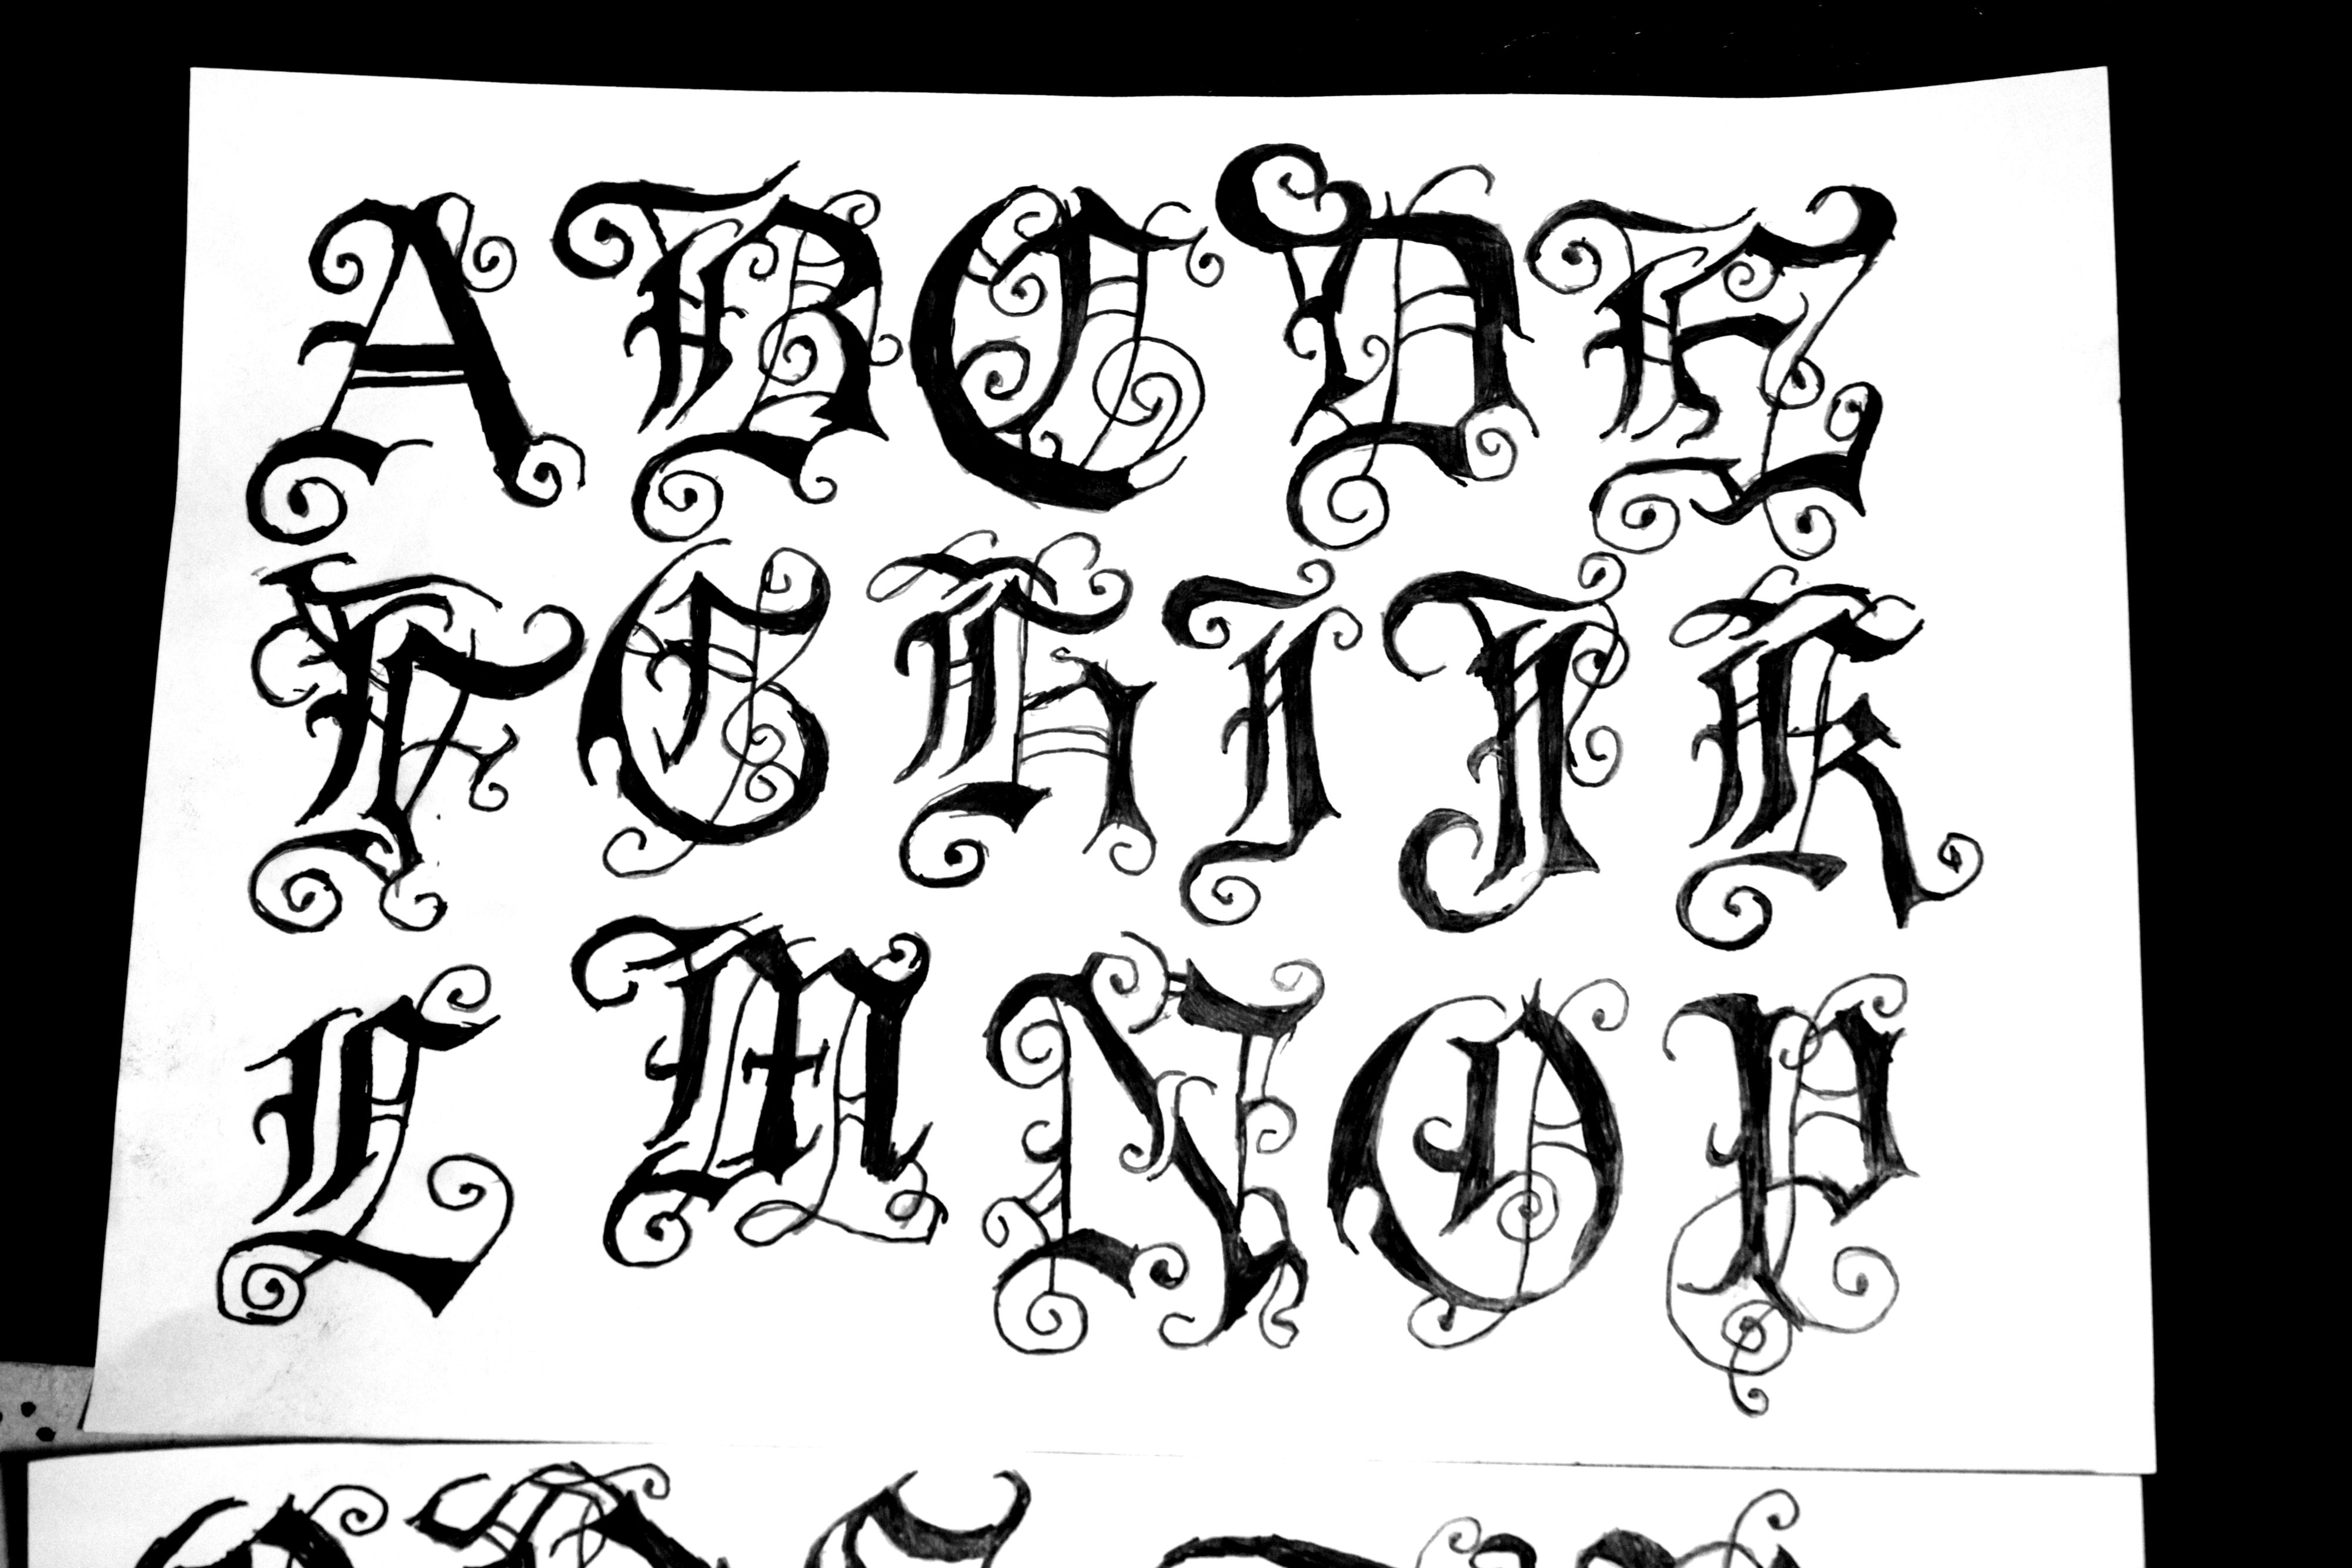 gothic font4 by ivanglas on DeviantArt